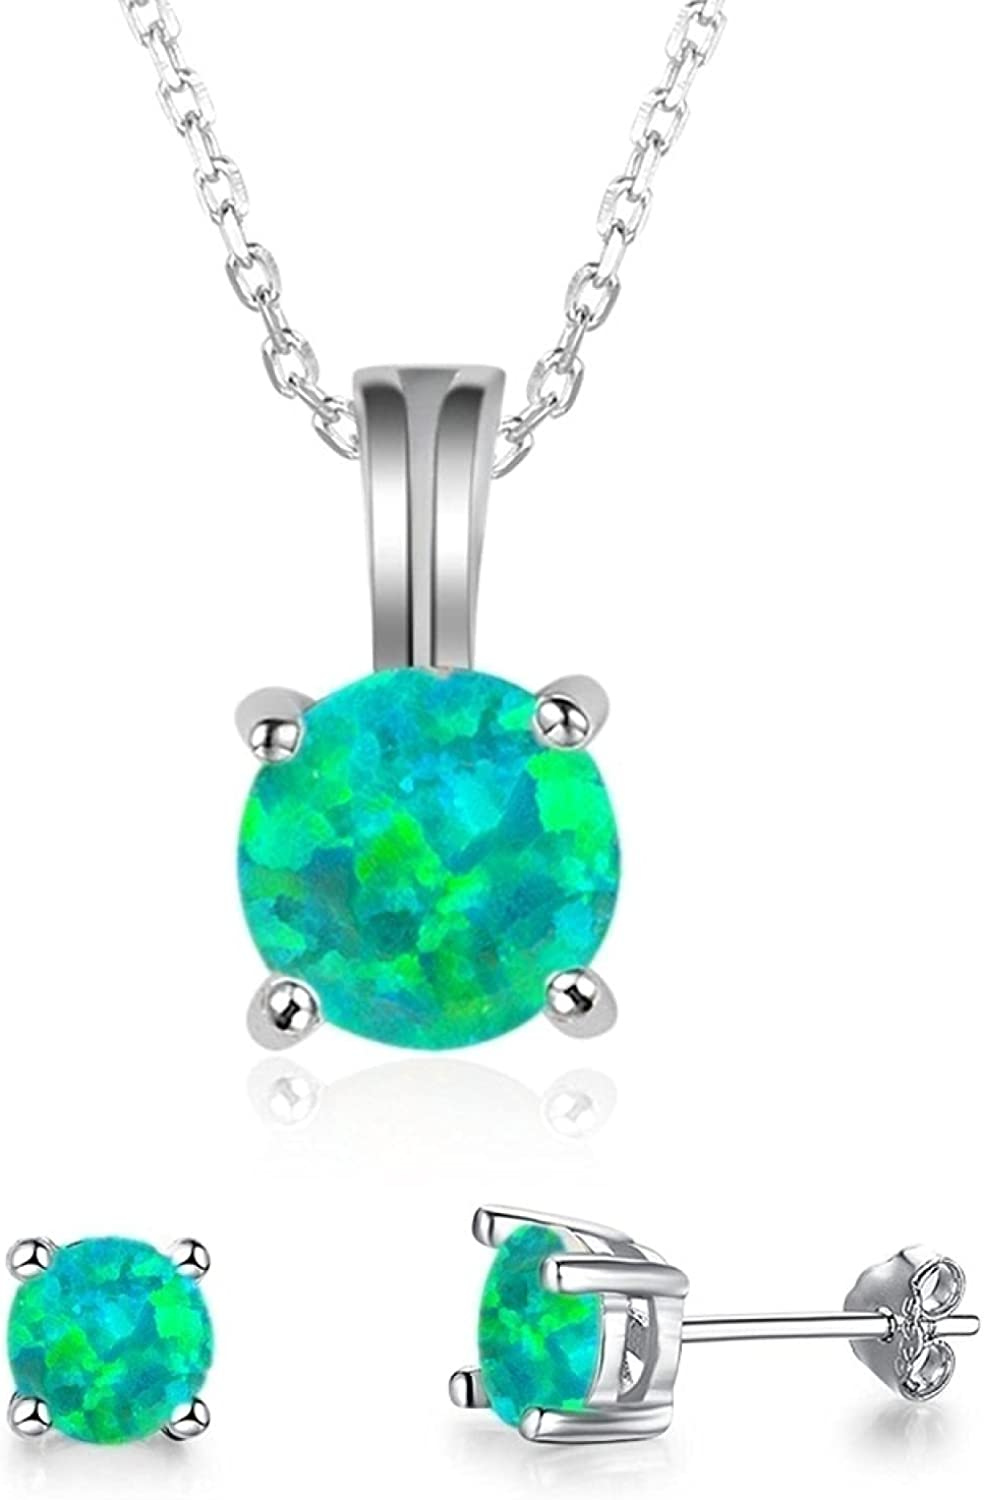 Trendy Women Pendant Necklace & Stud Earring Set For Girl Gift Fashion Cute Round Pendant Jewelry Set